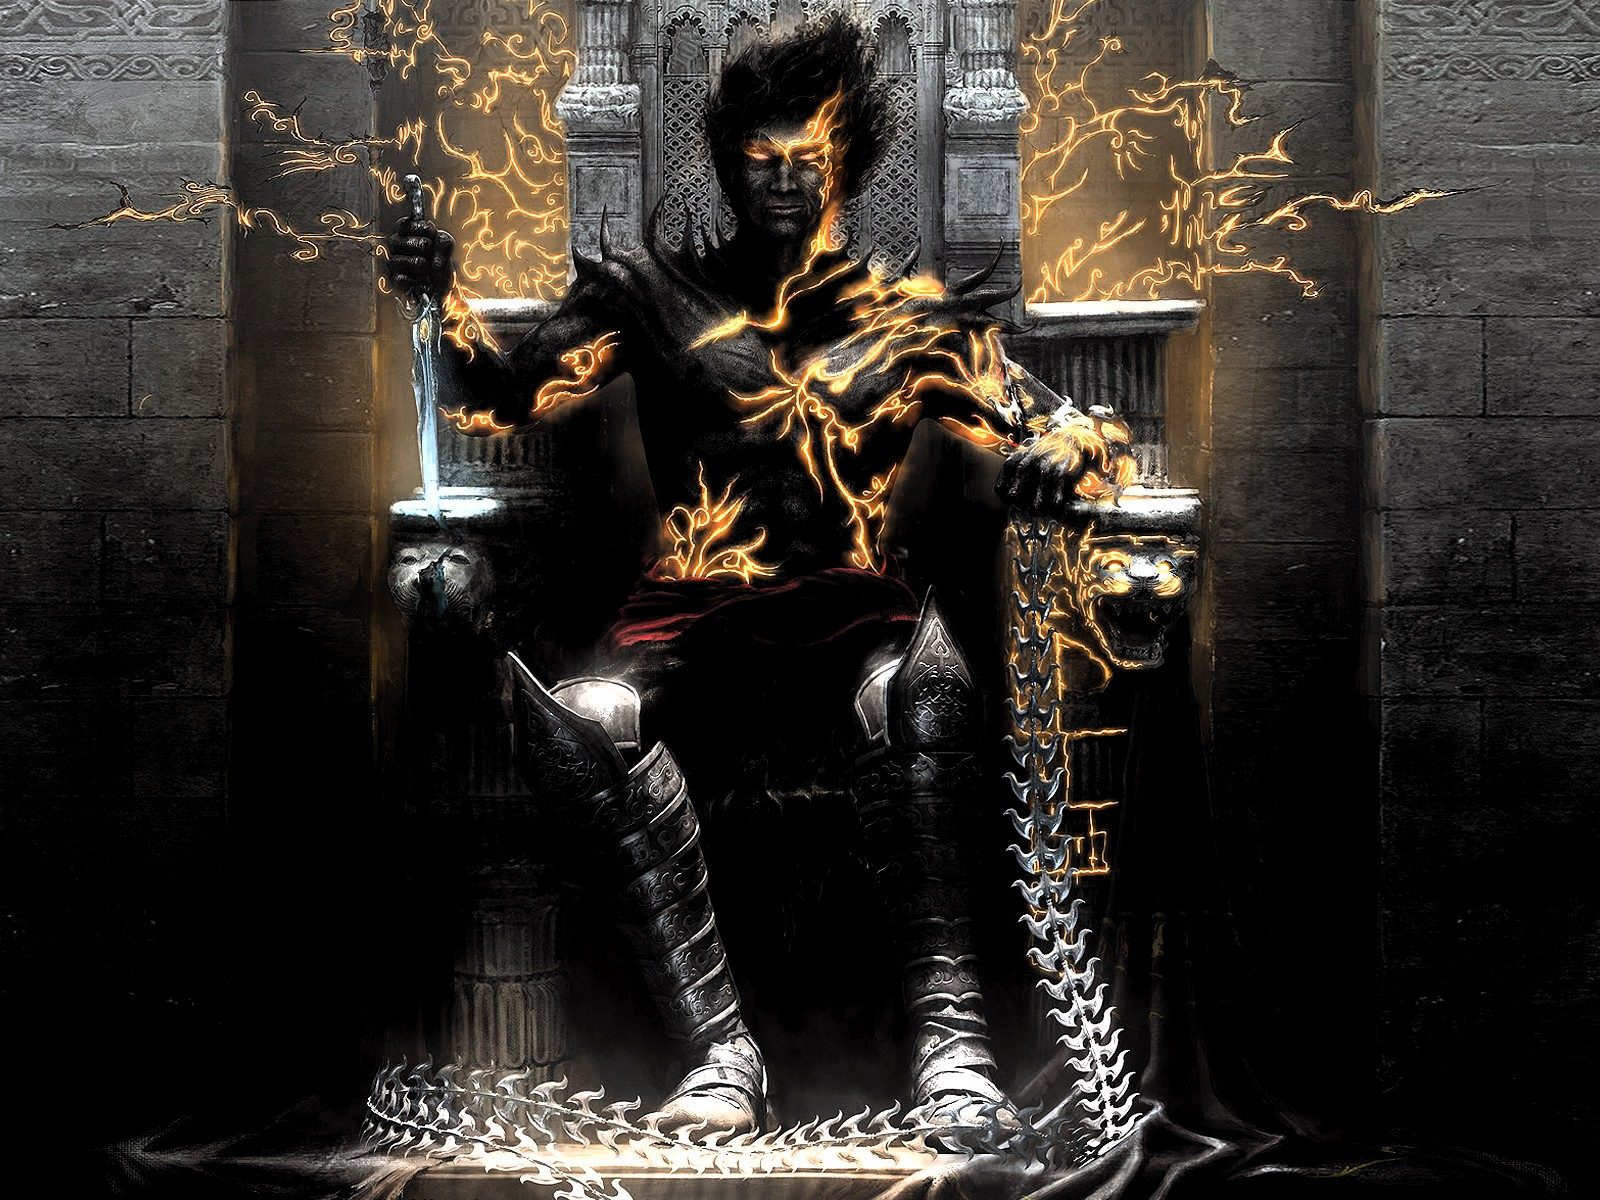 Prince Of Persia The Two Thrones Hd Wallpapers 1080p Prince Of Persia Wallpapers Asimbaba Free Software